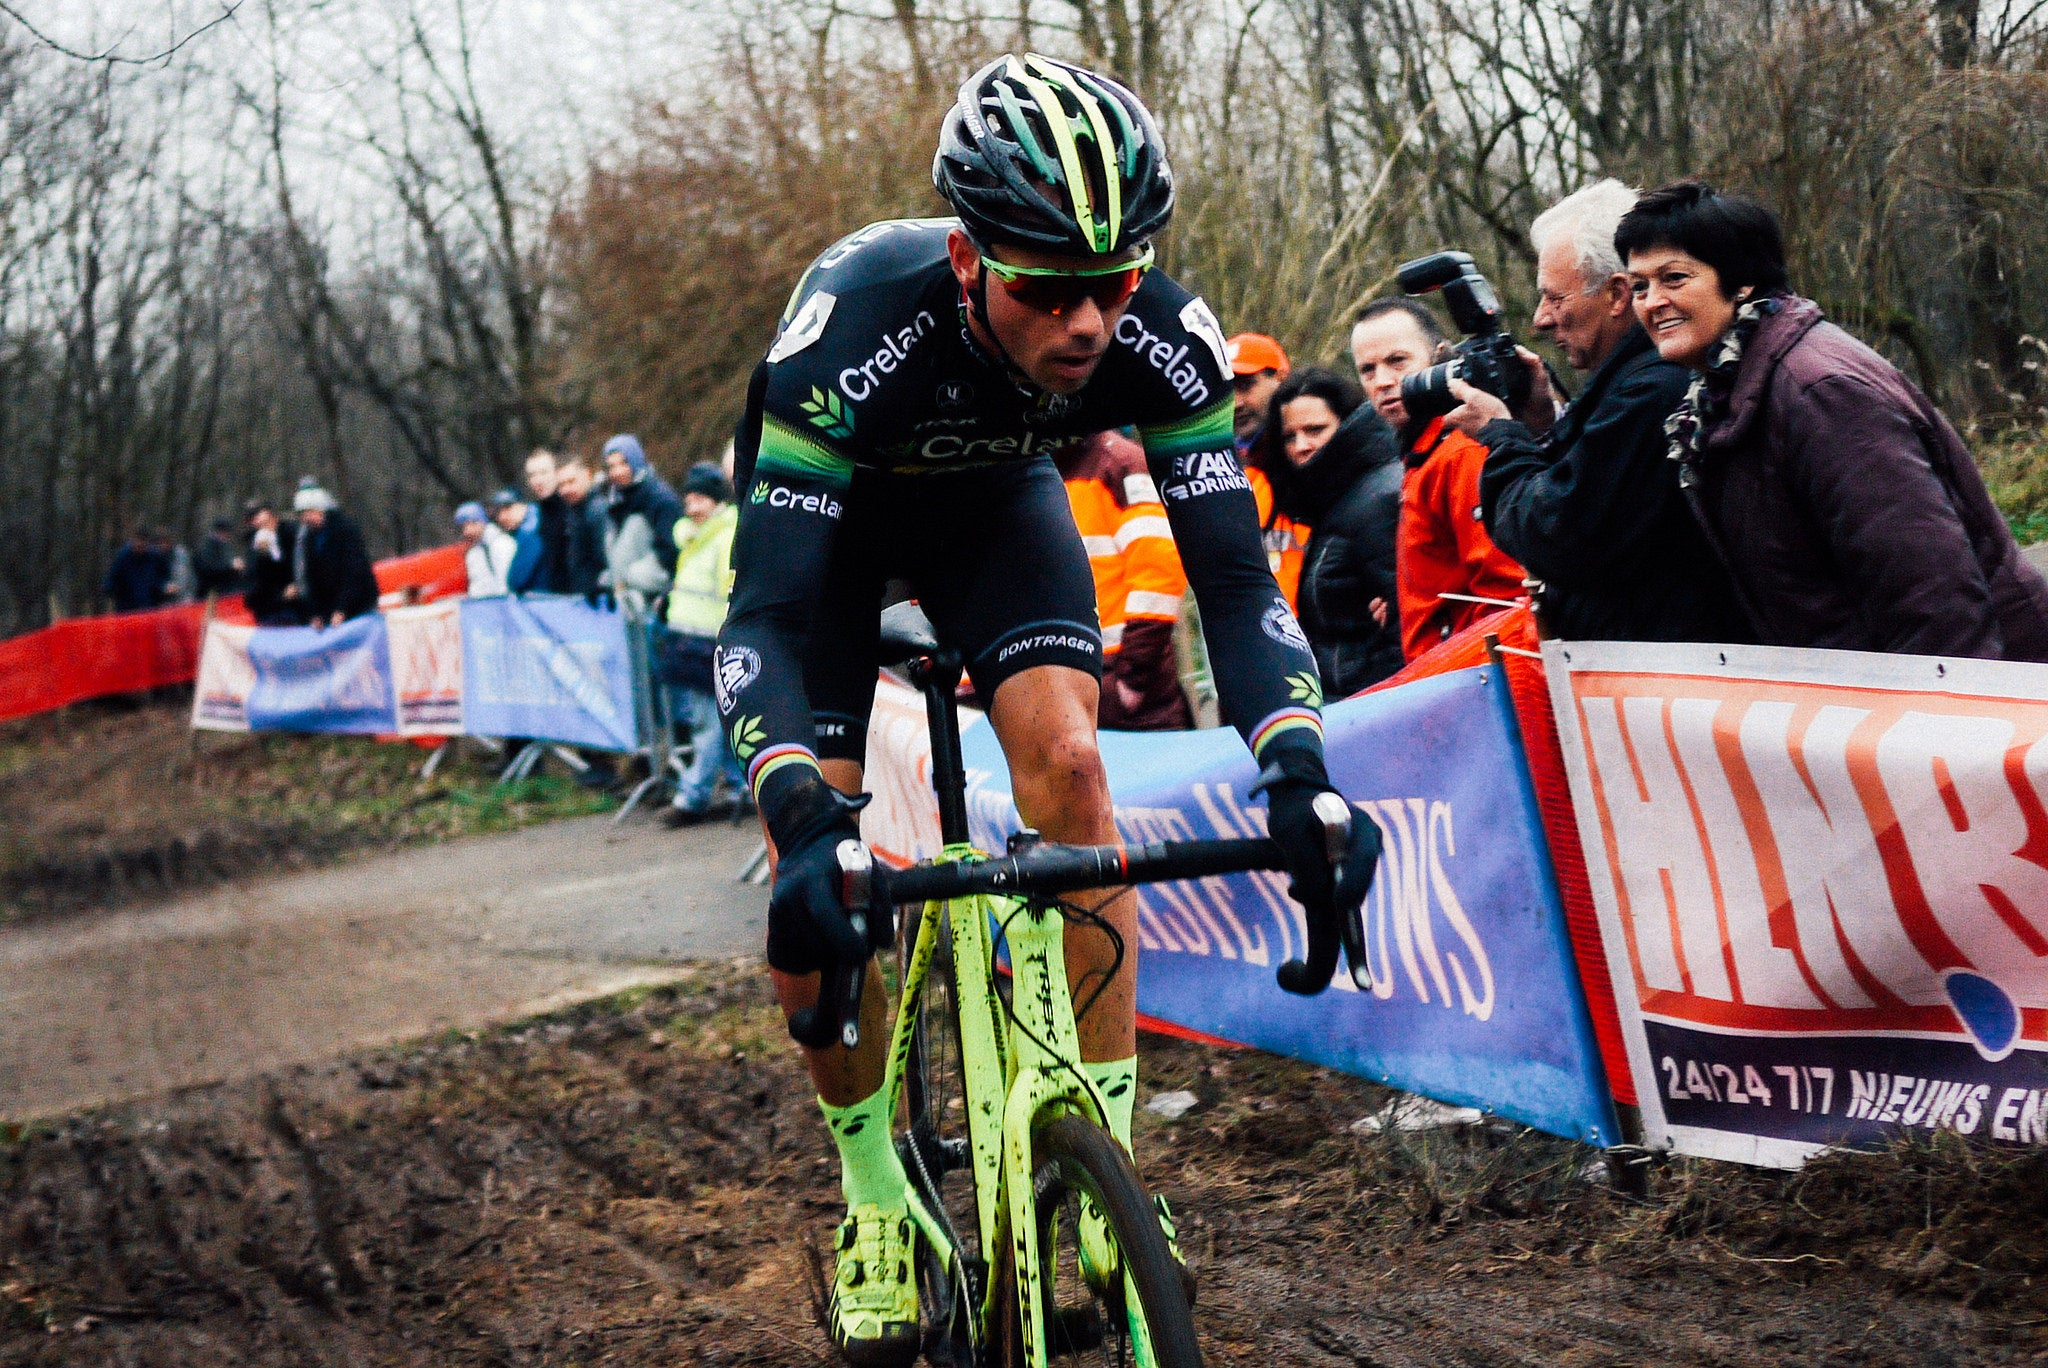 The Kerstperiode: Cyclo-cross on overload